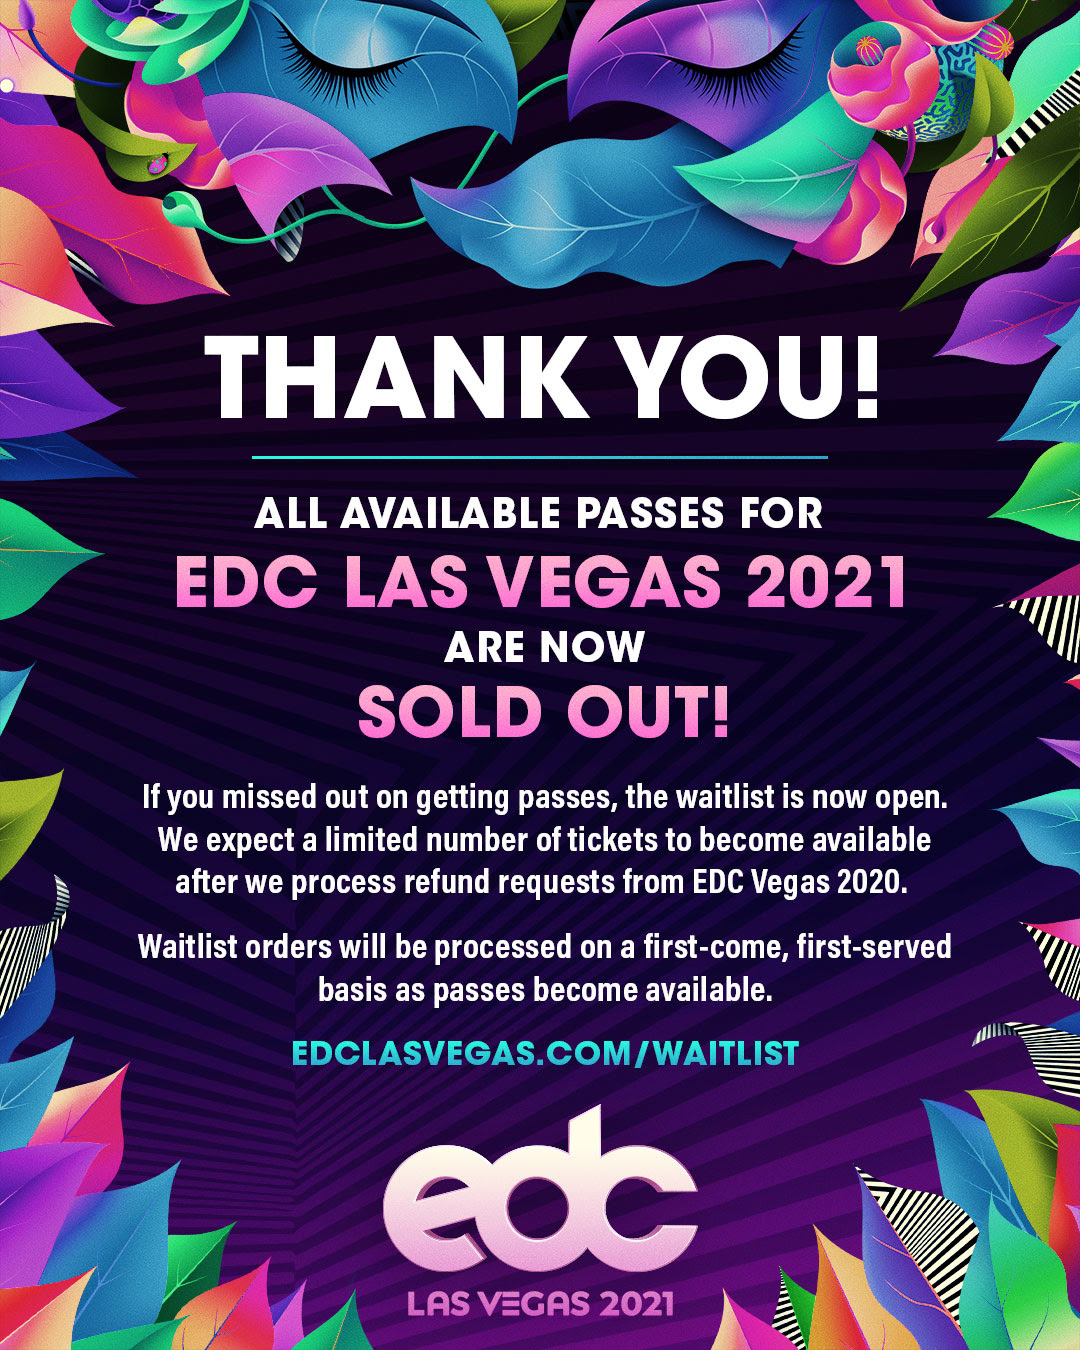 EDC Las Vegas 2021 Sold Out!